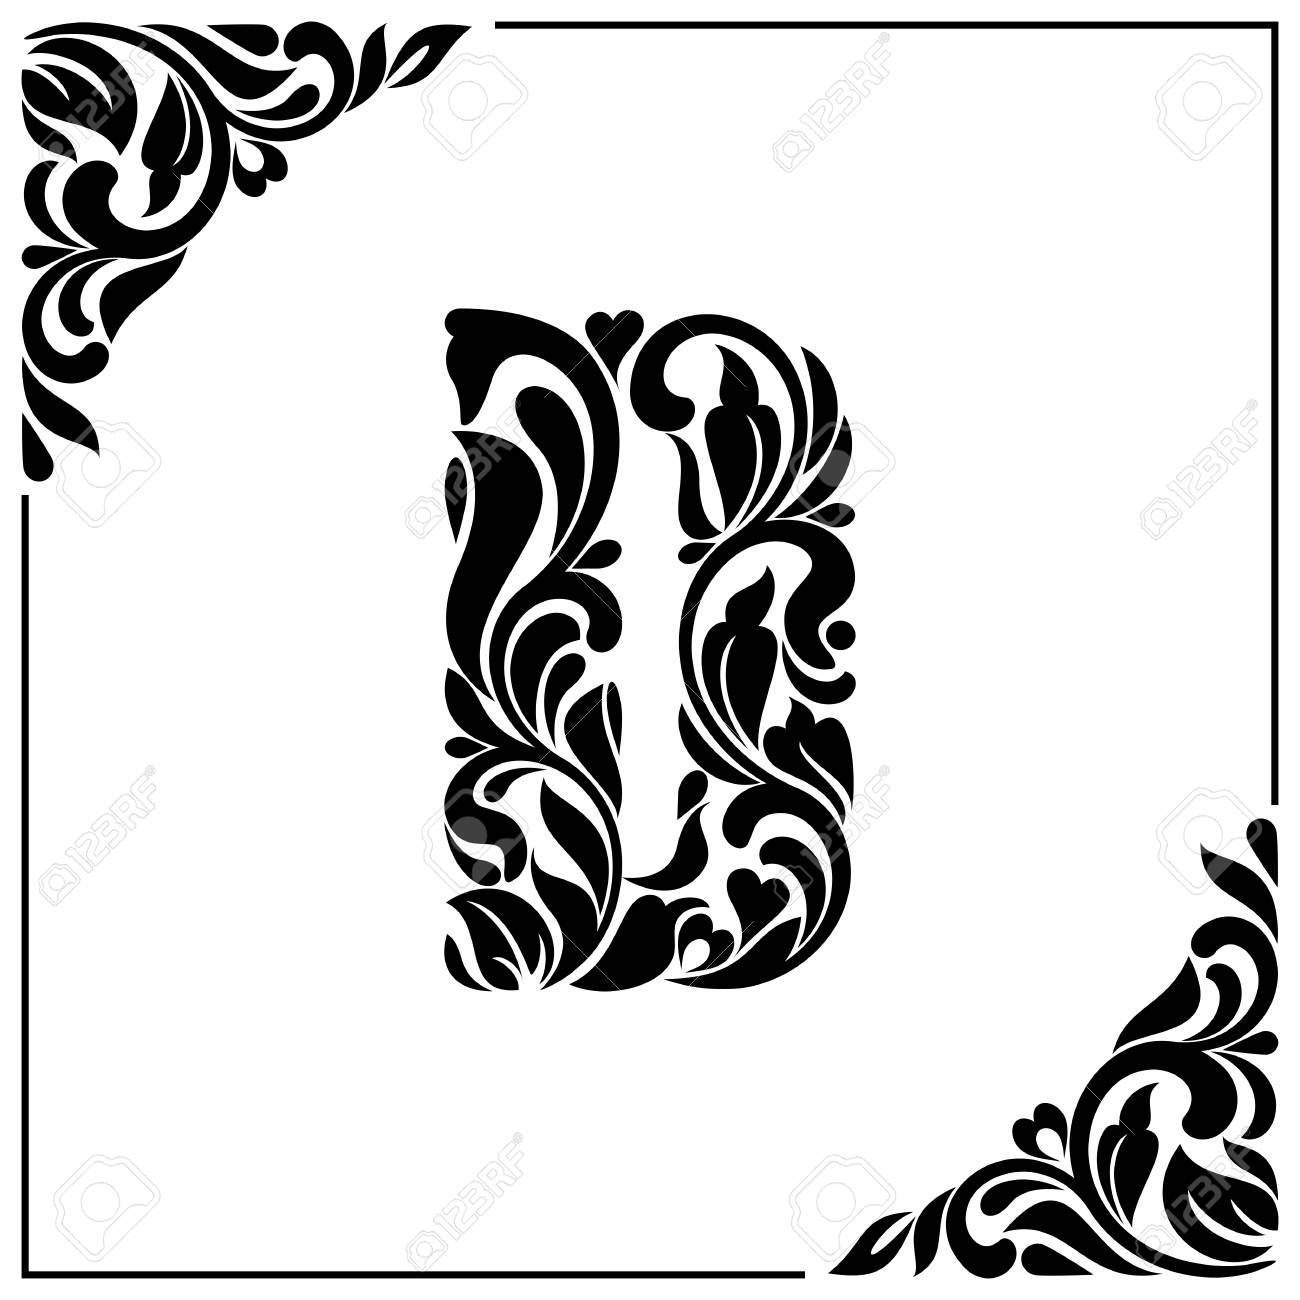 The Letter D Decorative Font With Swirls And Floral Elements Vintage Style Stock Vector